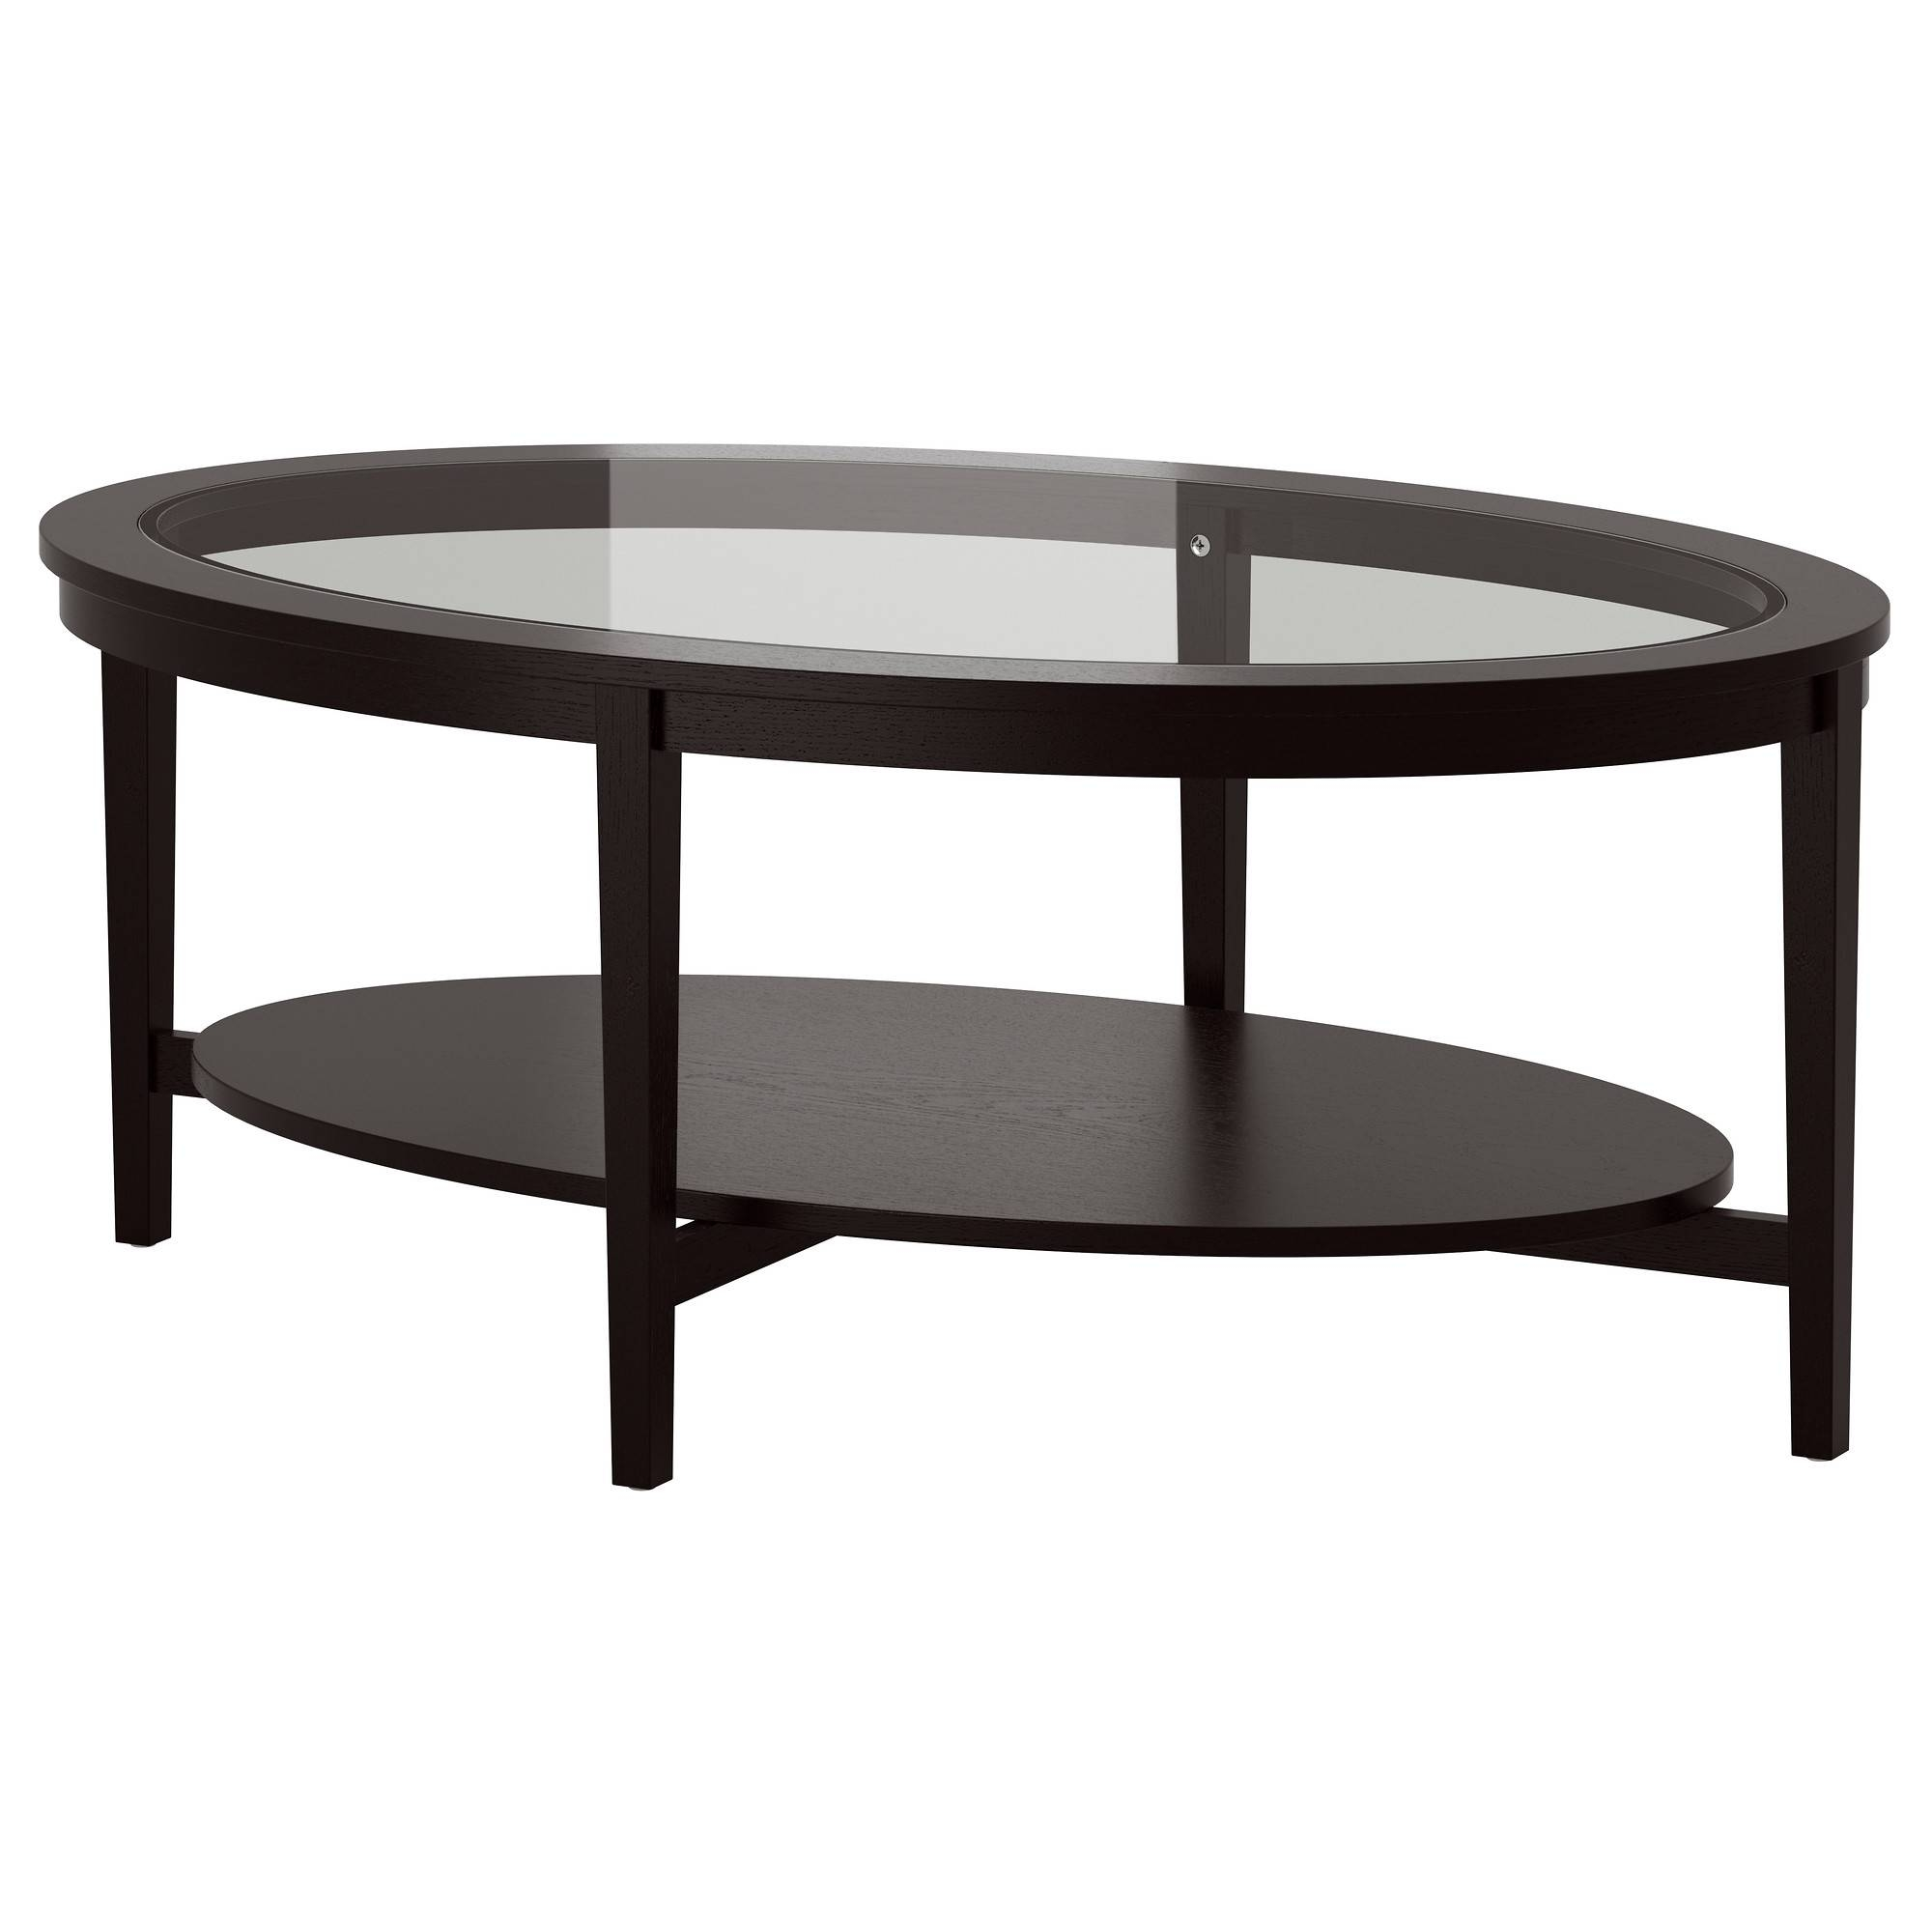 Malmsta Coffee Table - Ikea inside Glass and Black Coffee Tables (Image 26 of 30)